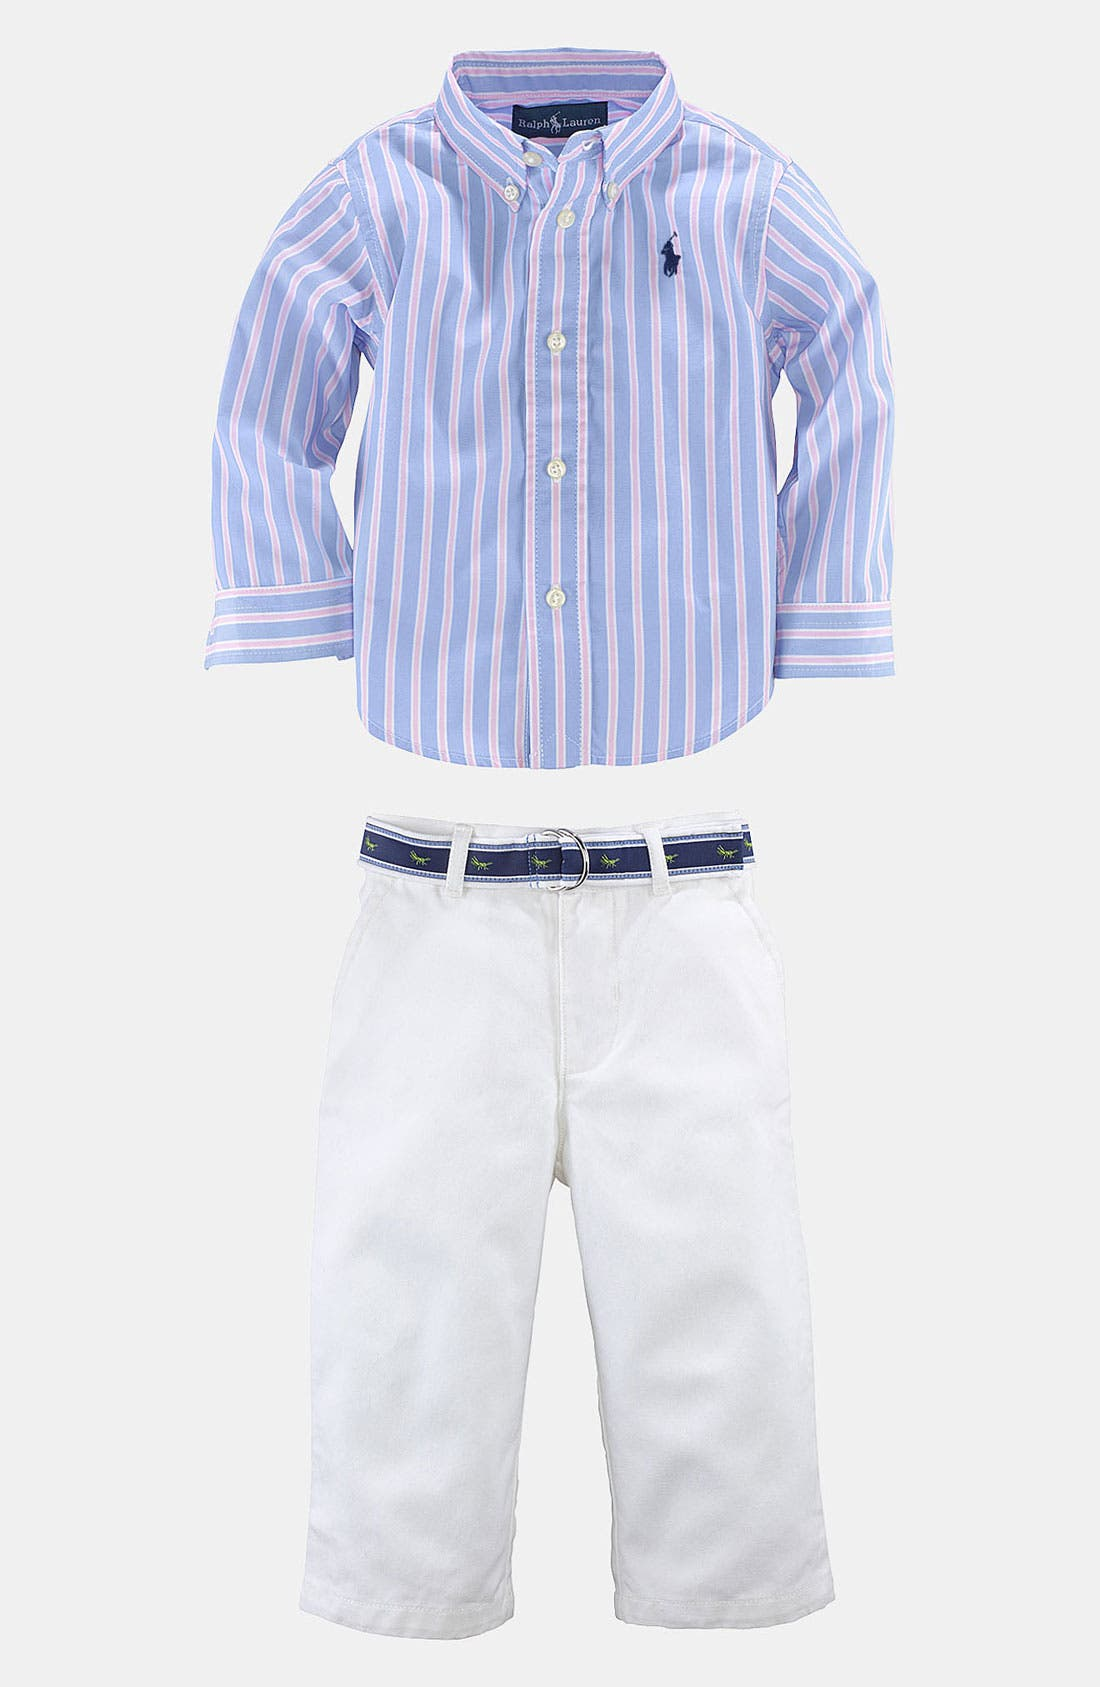 Main Image - Ralph Lauren Shirt & Pants (Baby)